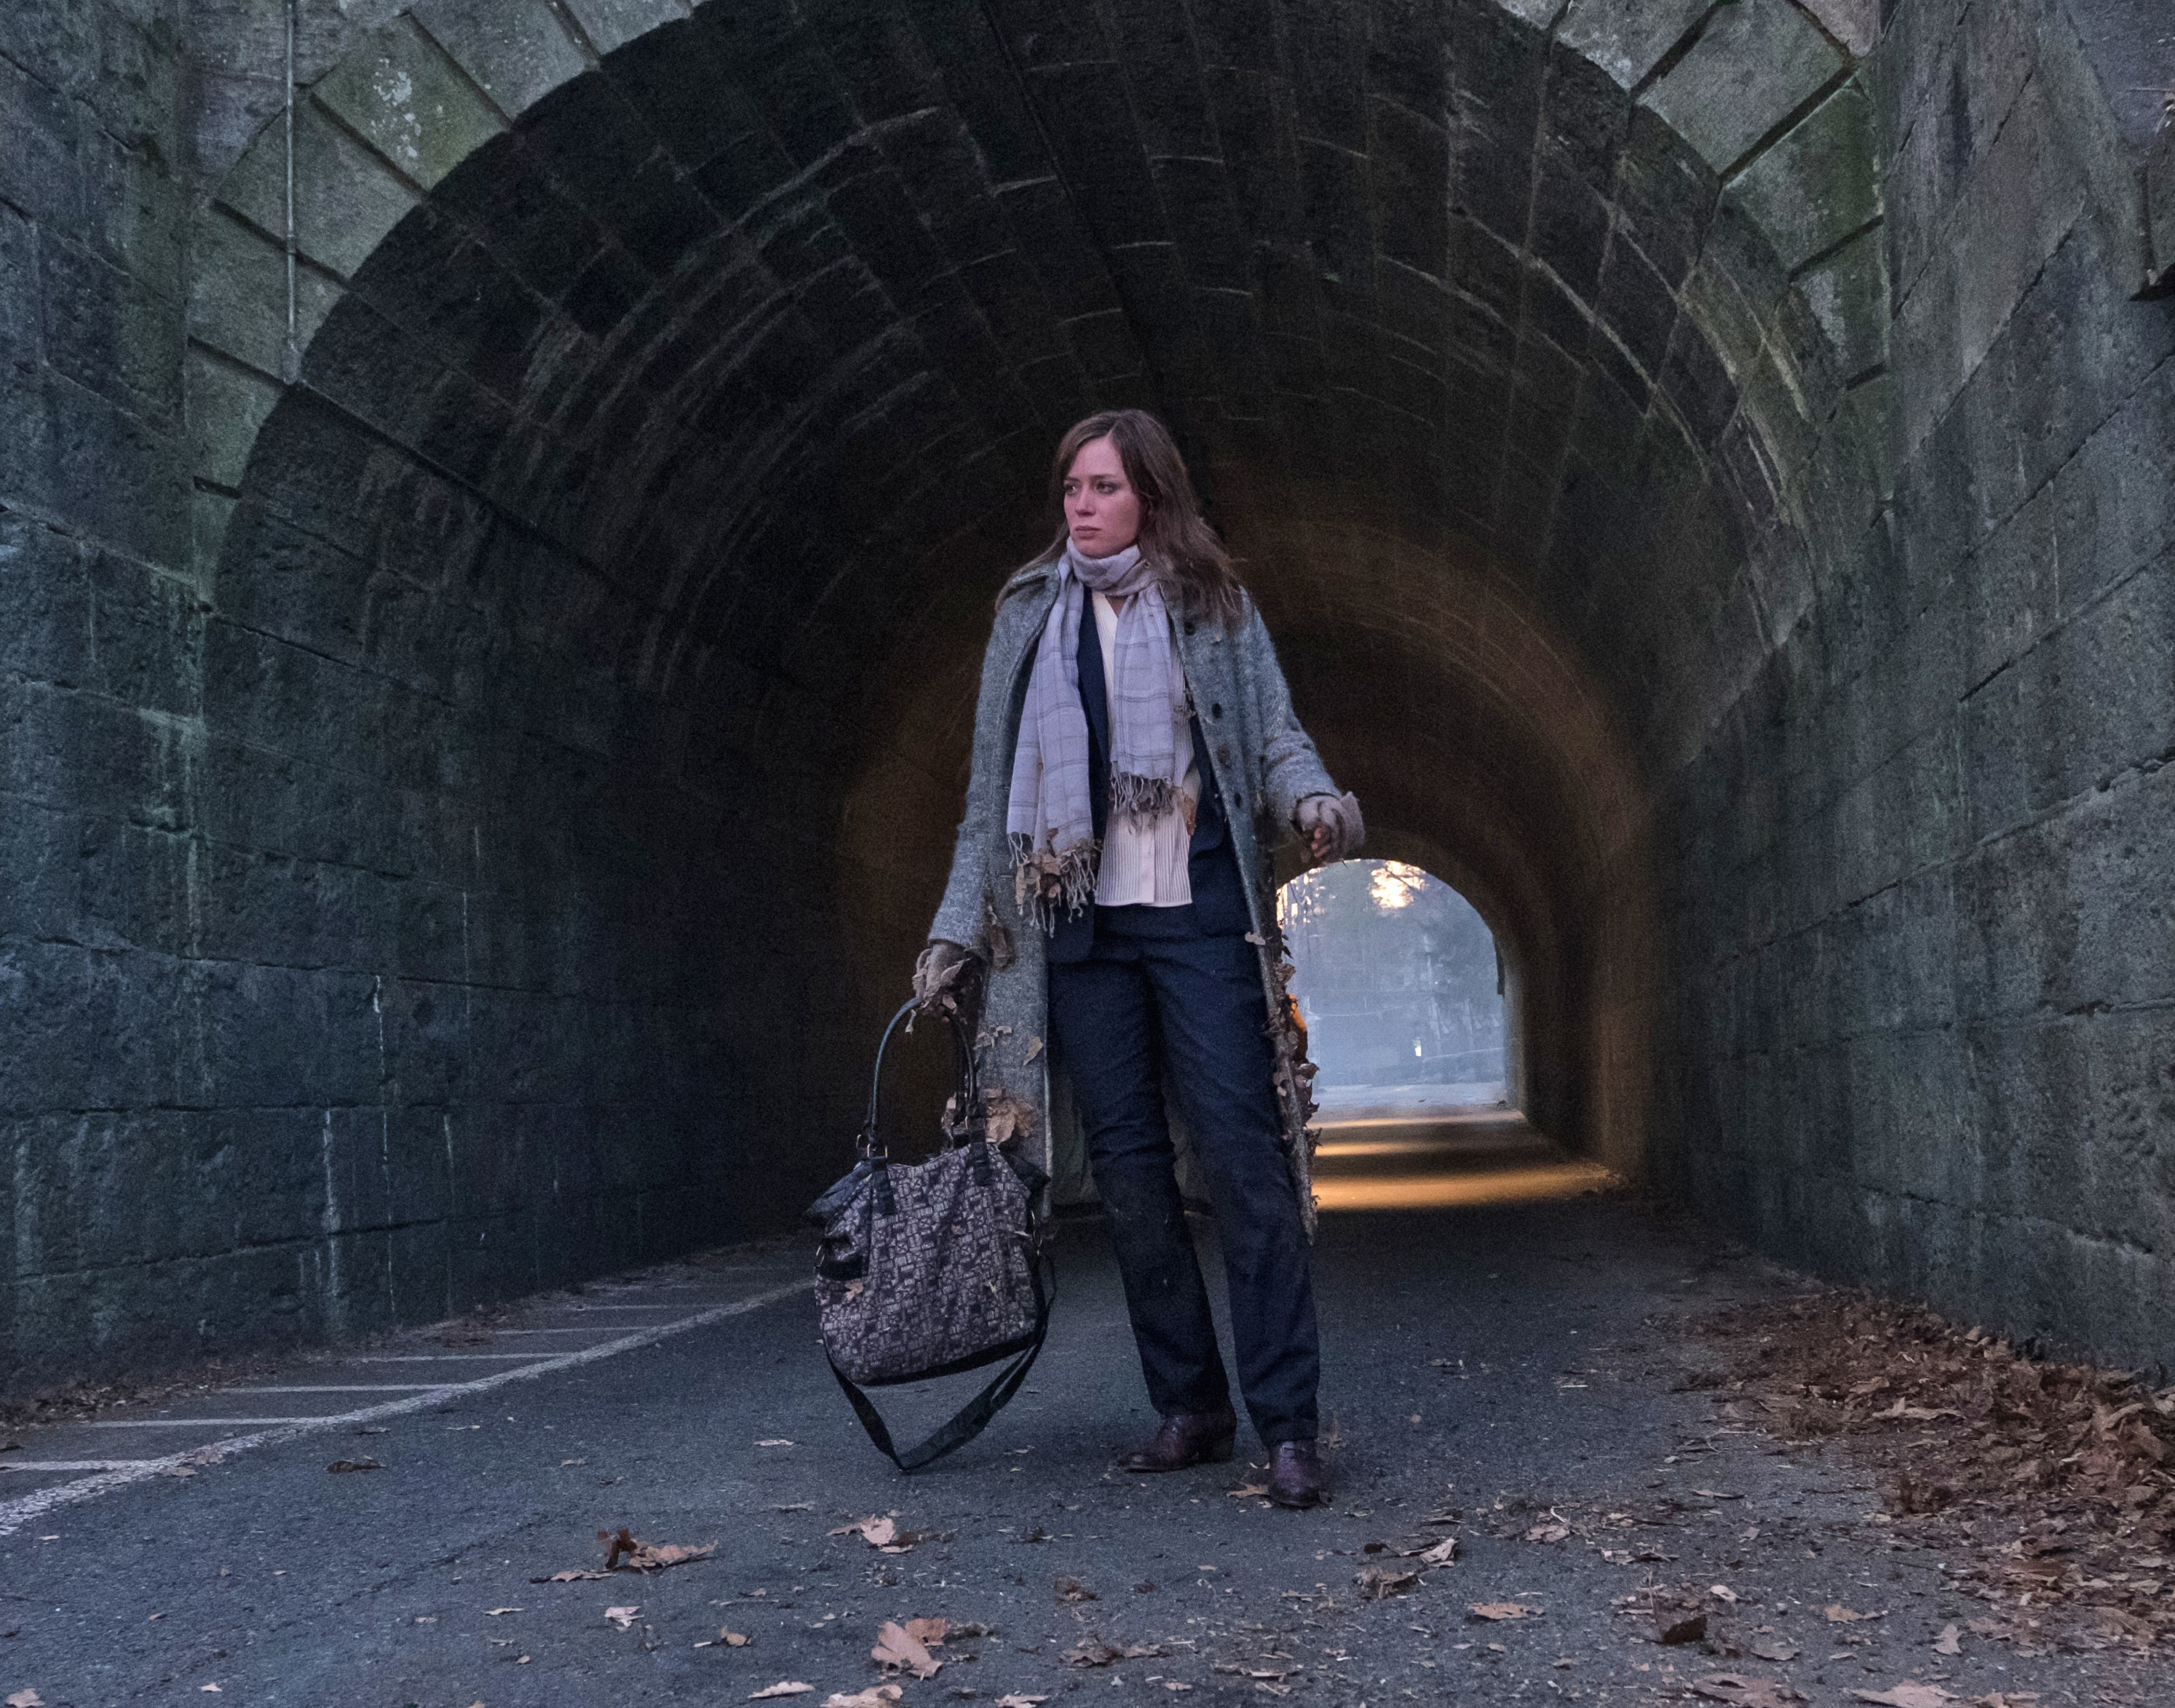 Emily Blunt - The Girl on the Train.jpeg